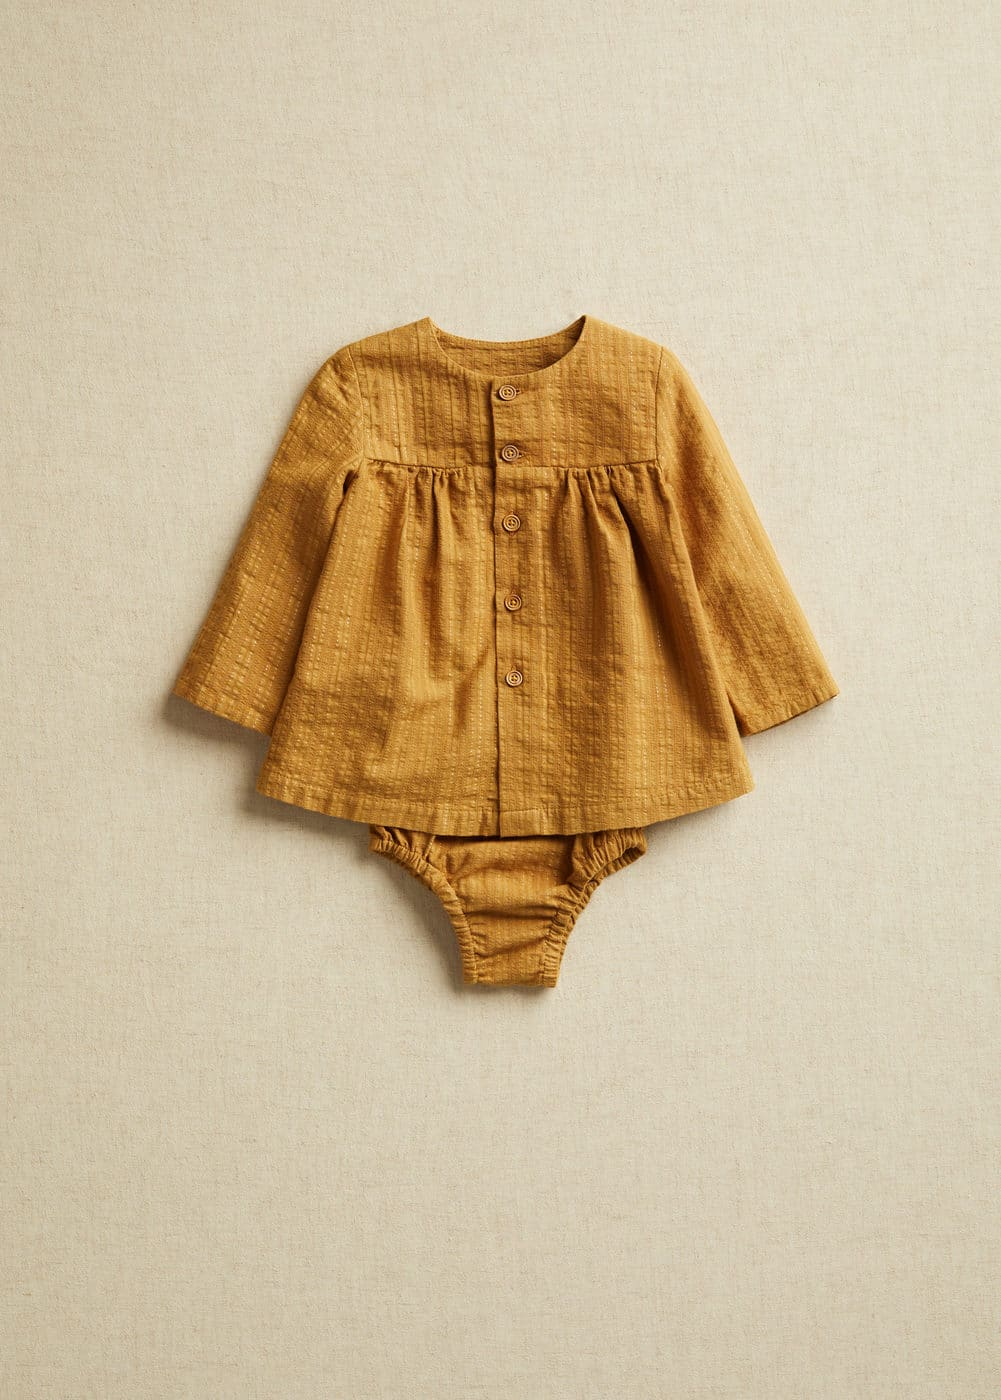 Ochre textured blouse and bloomers